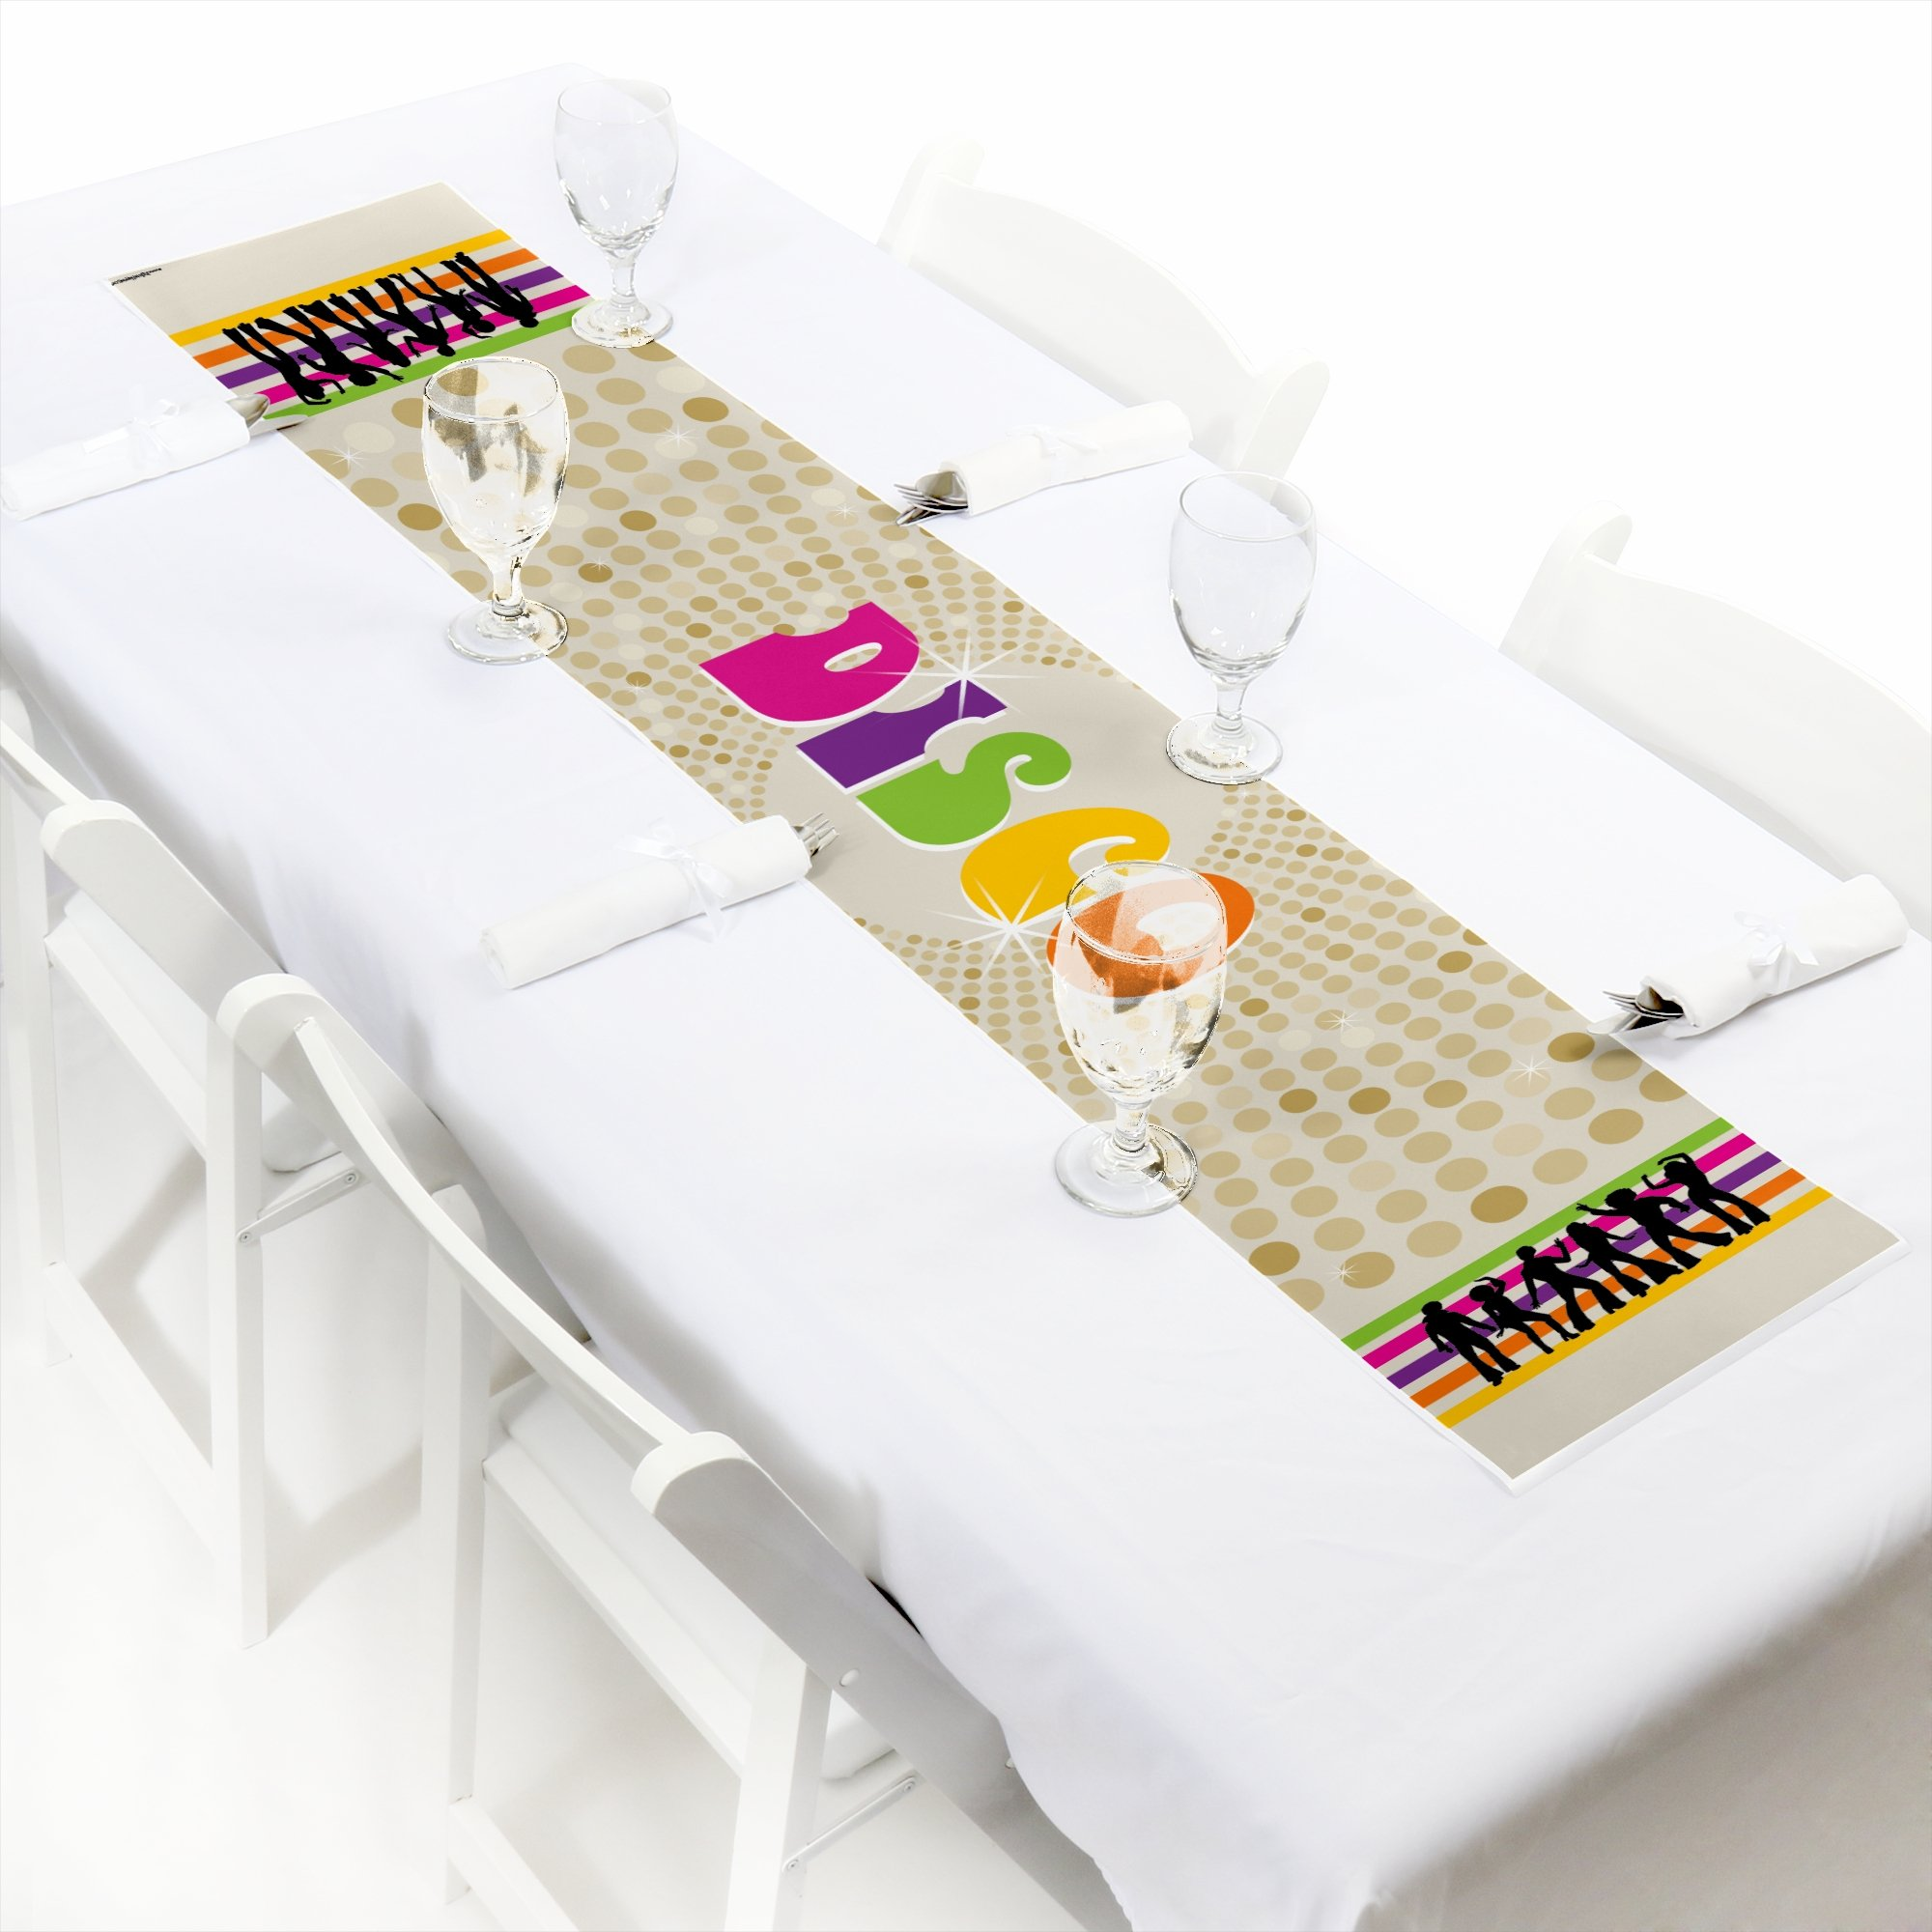 Big Dot of Happiness 70's Disco - Petite 1970's Disco Fever Party Paper Table Runner - 12 x 60 inches by Big Dot of Happiness